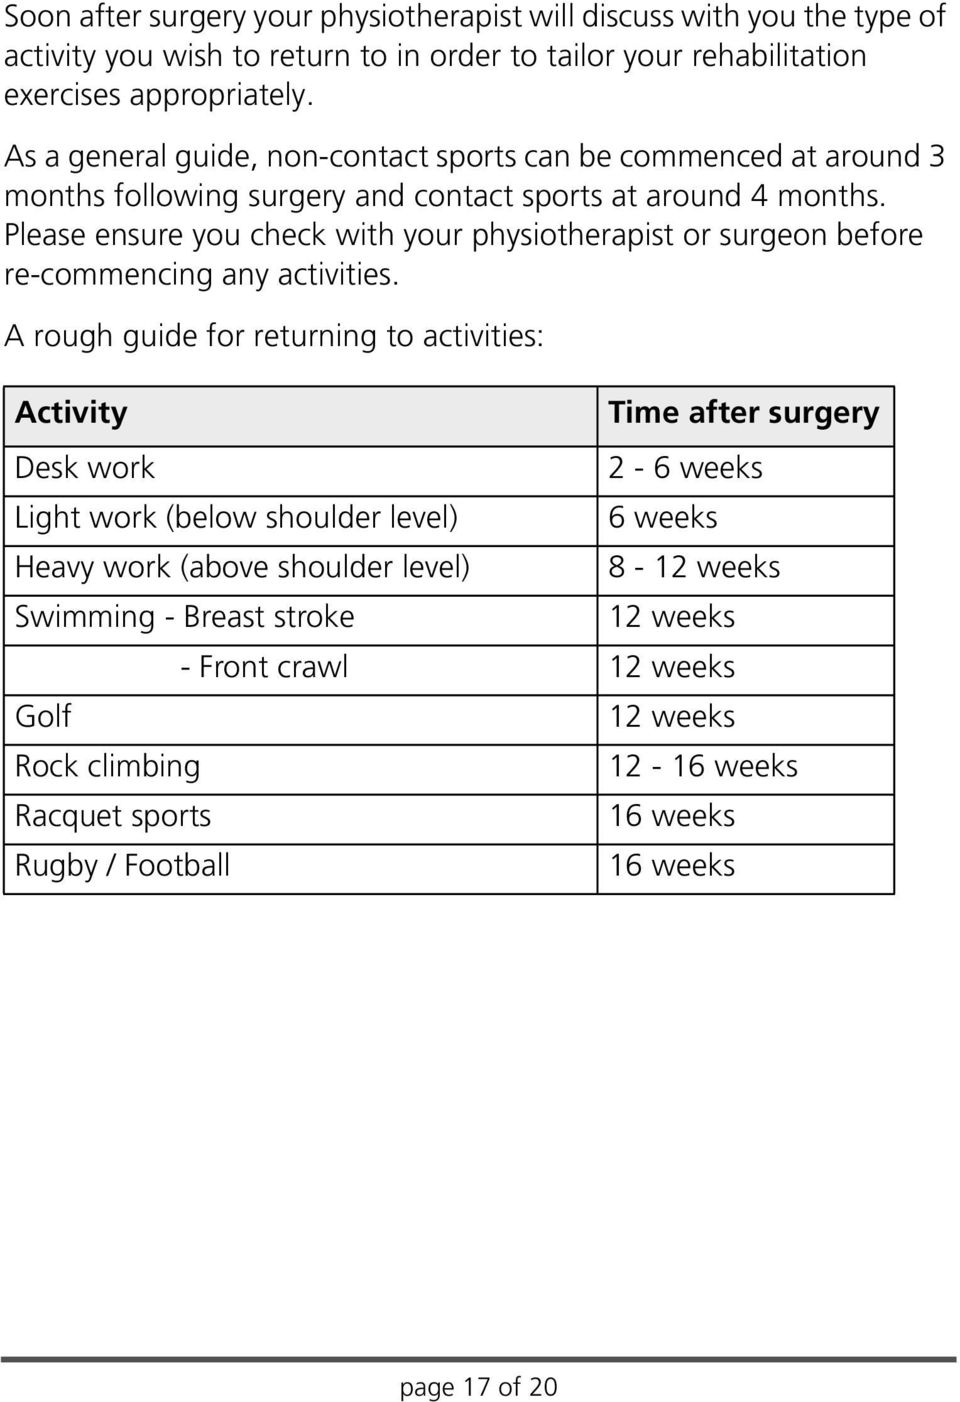 Please ensure you check with your physiotherapist or surgeon before re-commencing any activities.